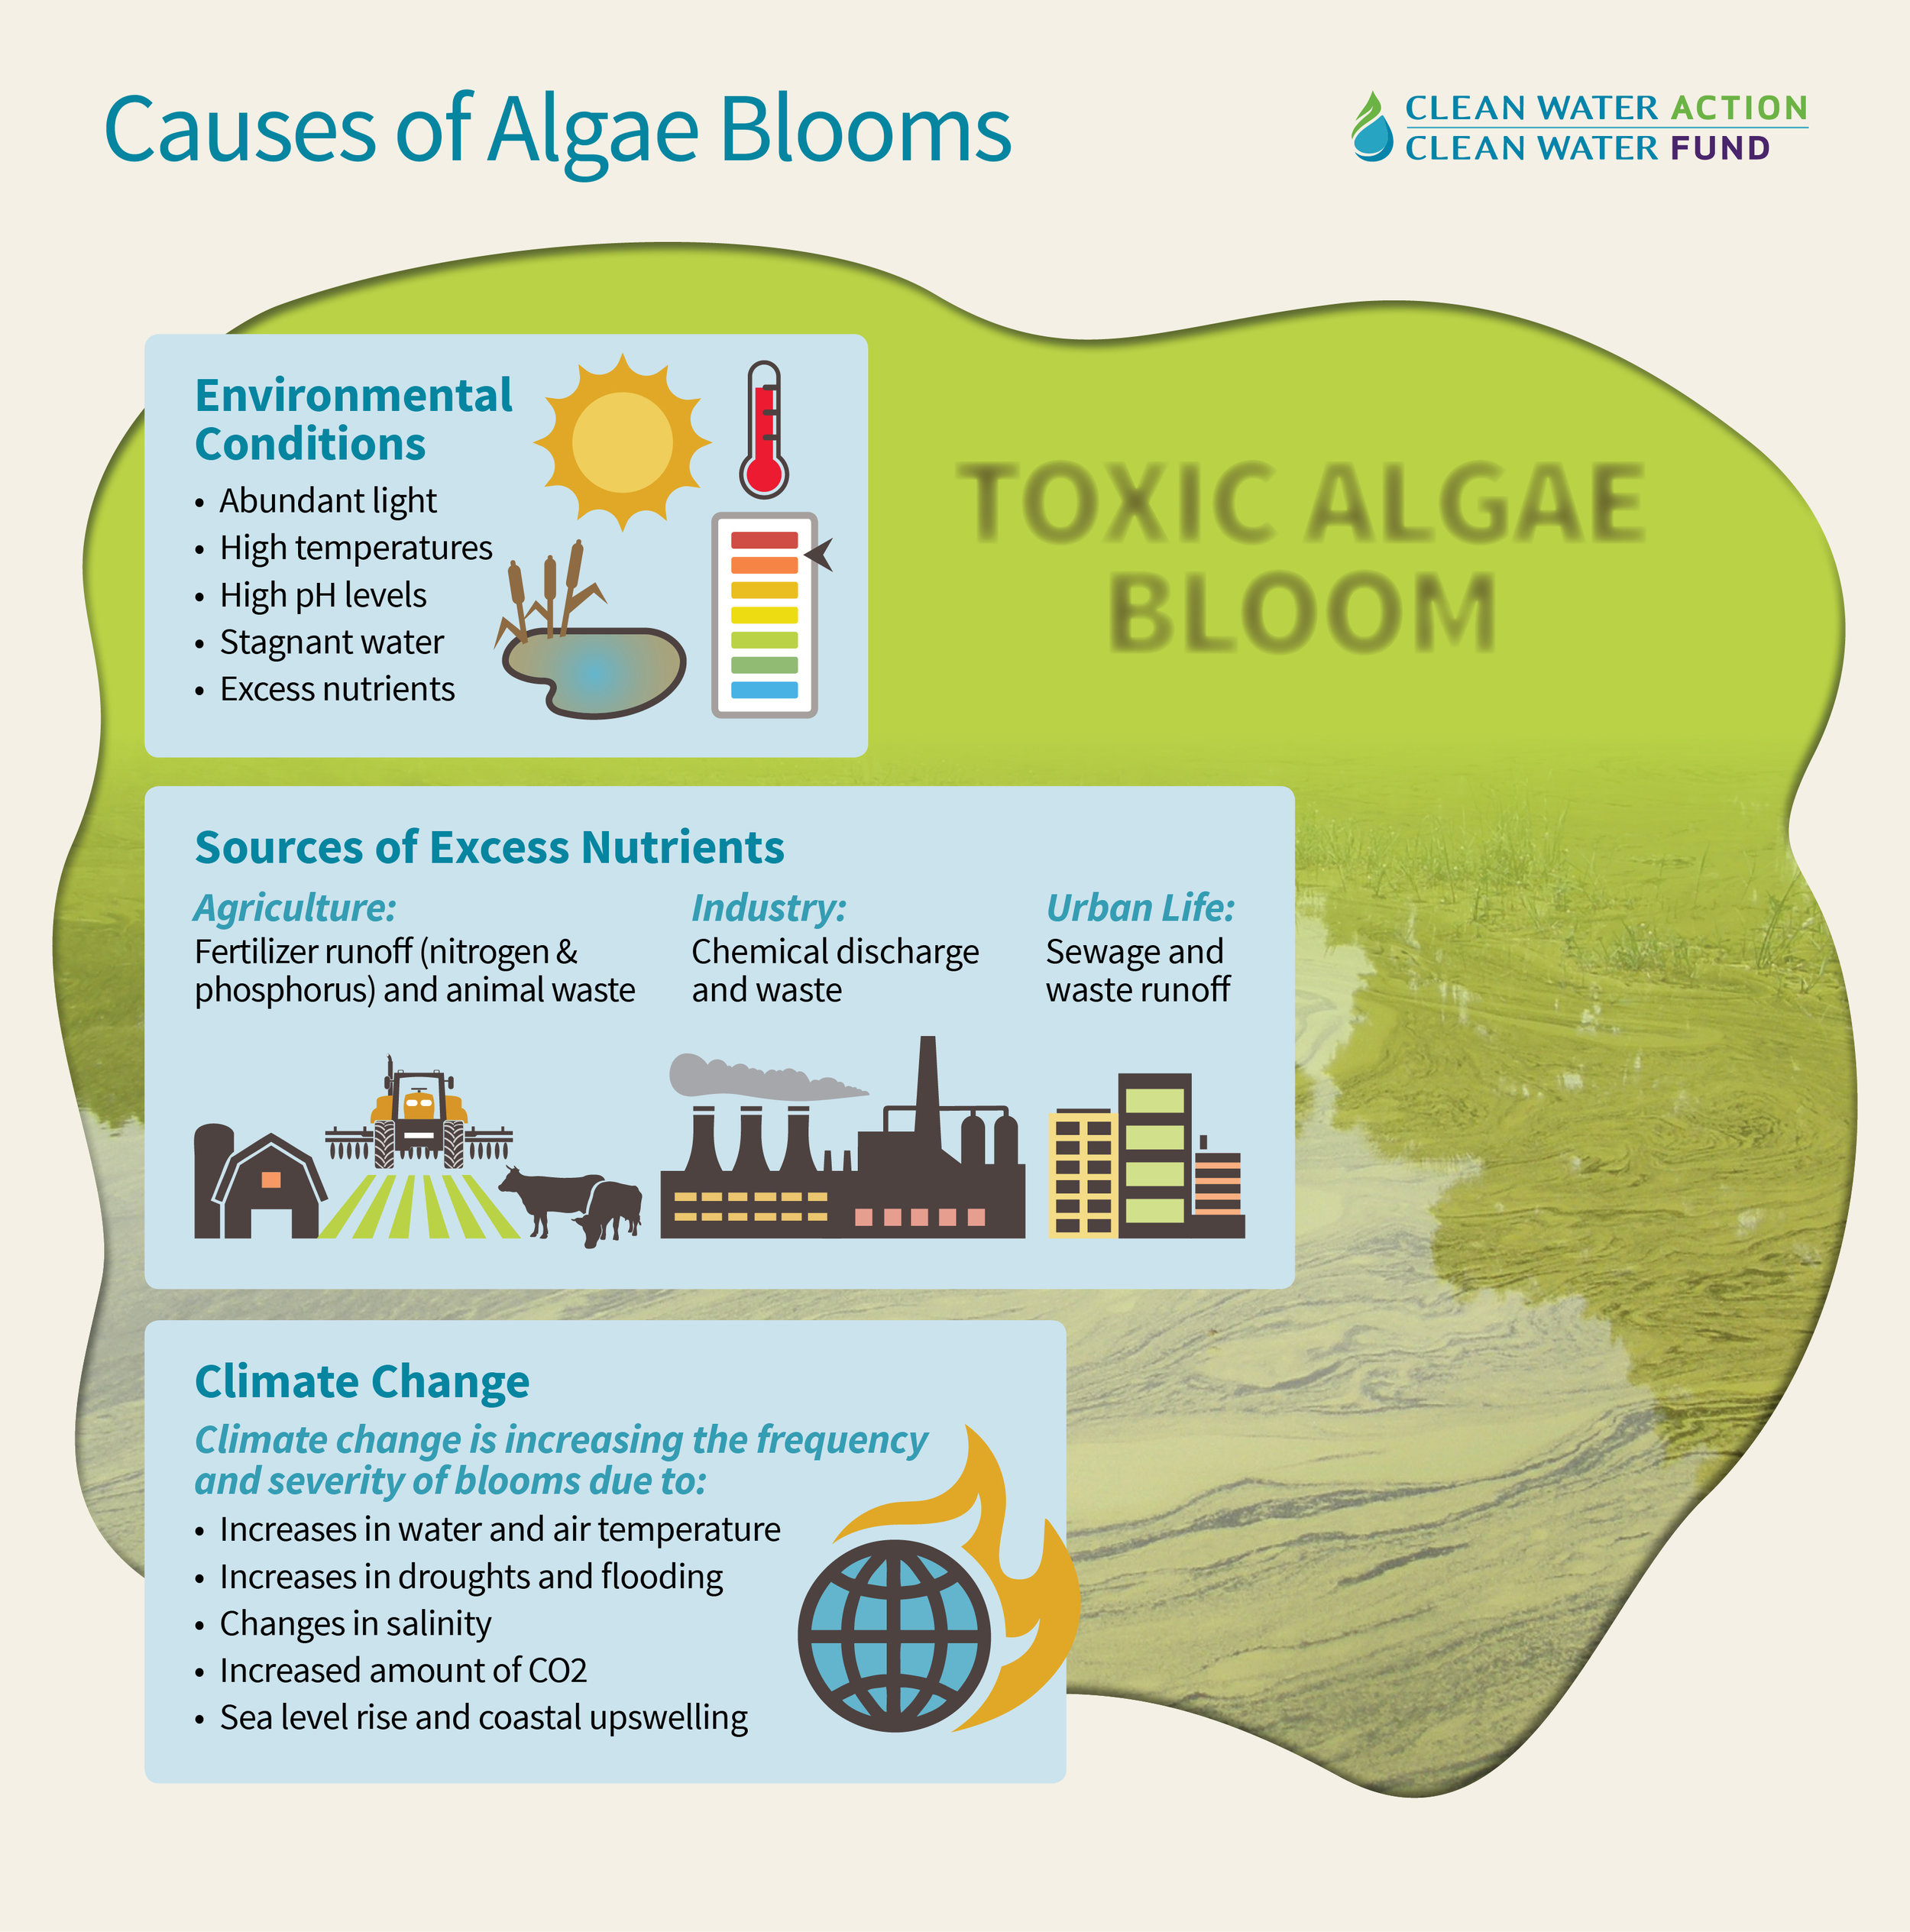 Infographic showing how climate change is causing an increase in algal blooms, both in severity and number of occurrences, from Clean Water Action.